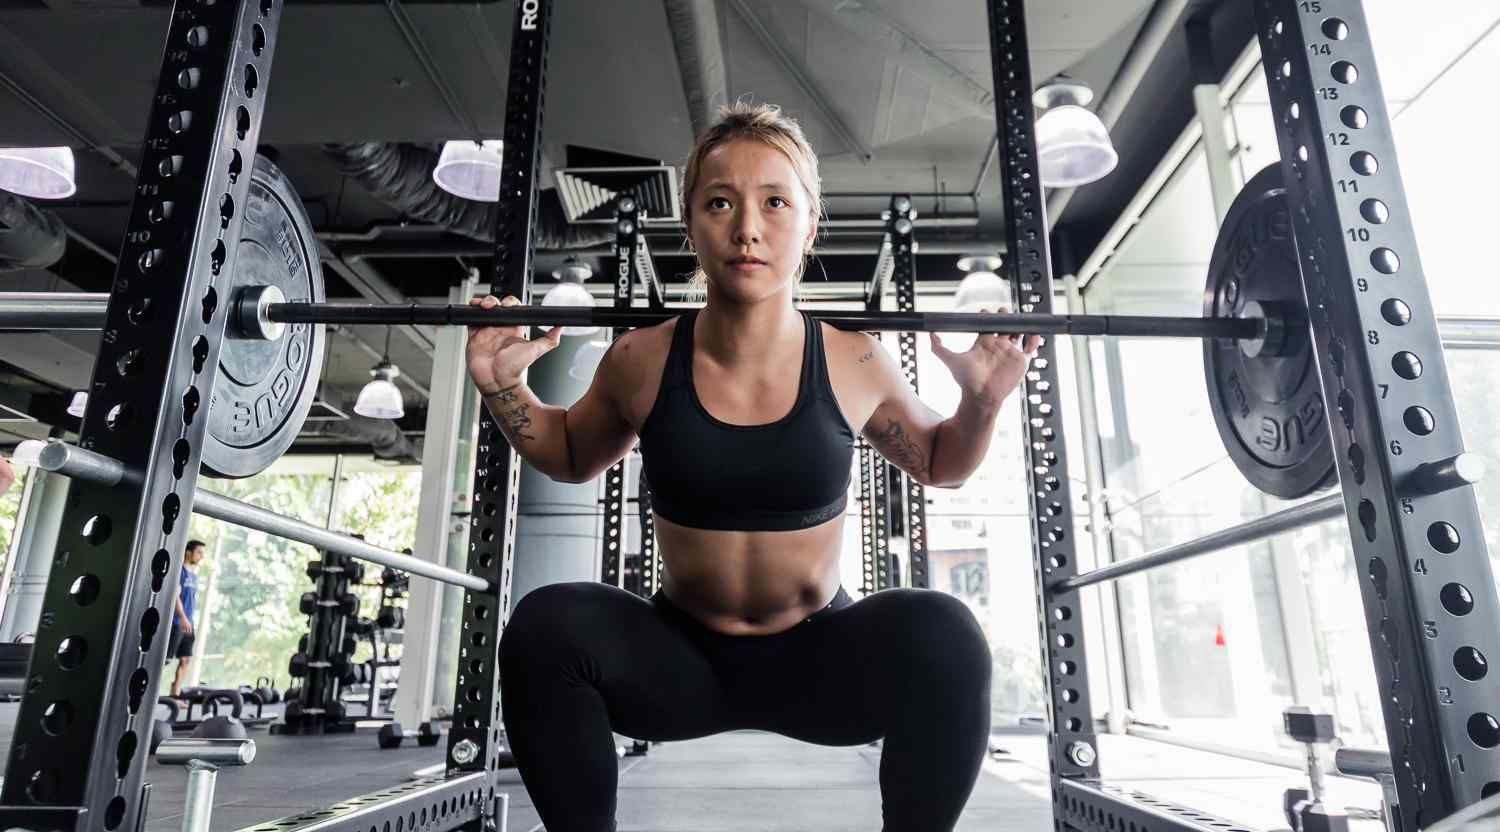 How to Maximize Your Workout with Bumper Plates